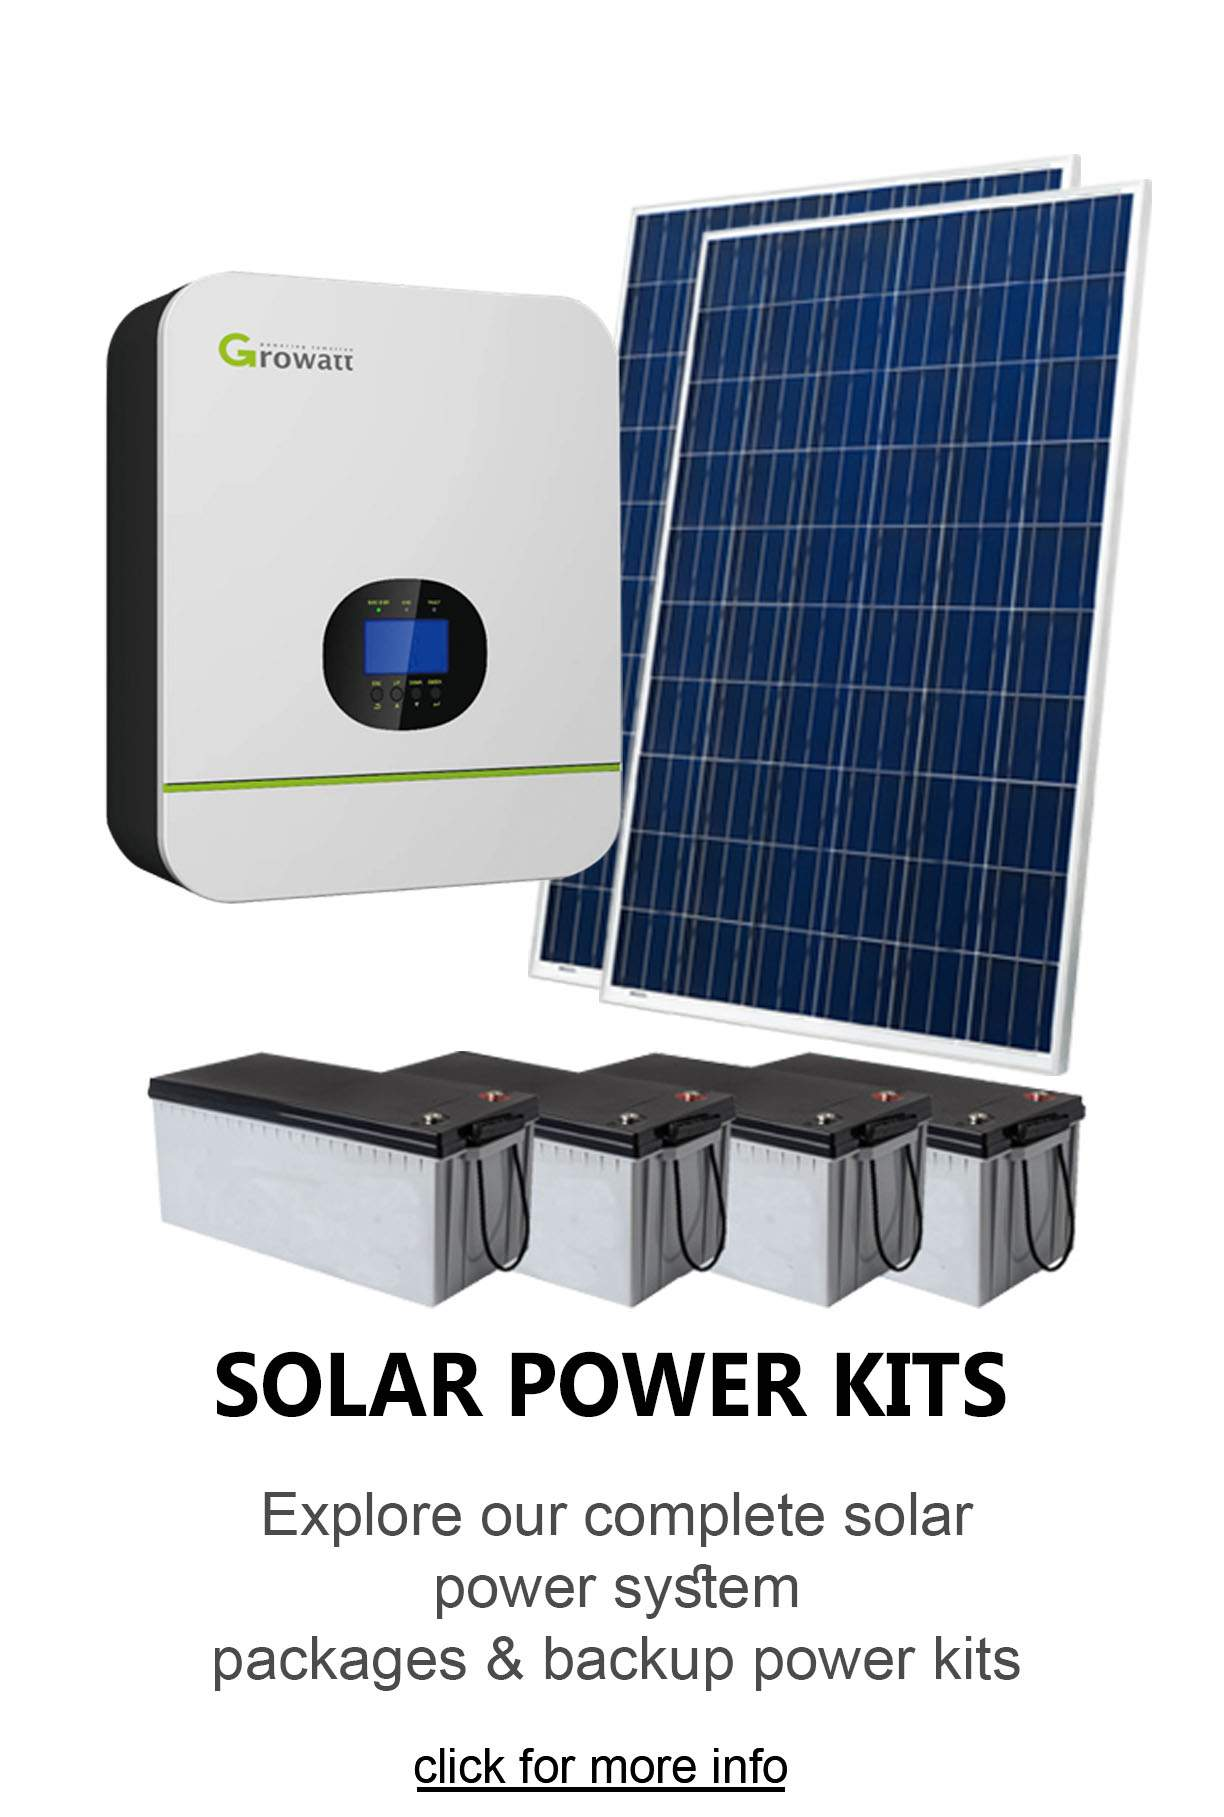 complete solar power kits for homes in Bloemfontein south africa or diy solar system for sale in Bloemfontein south africa.